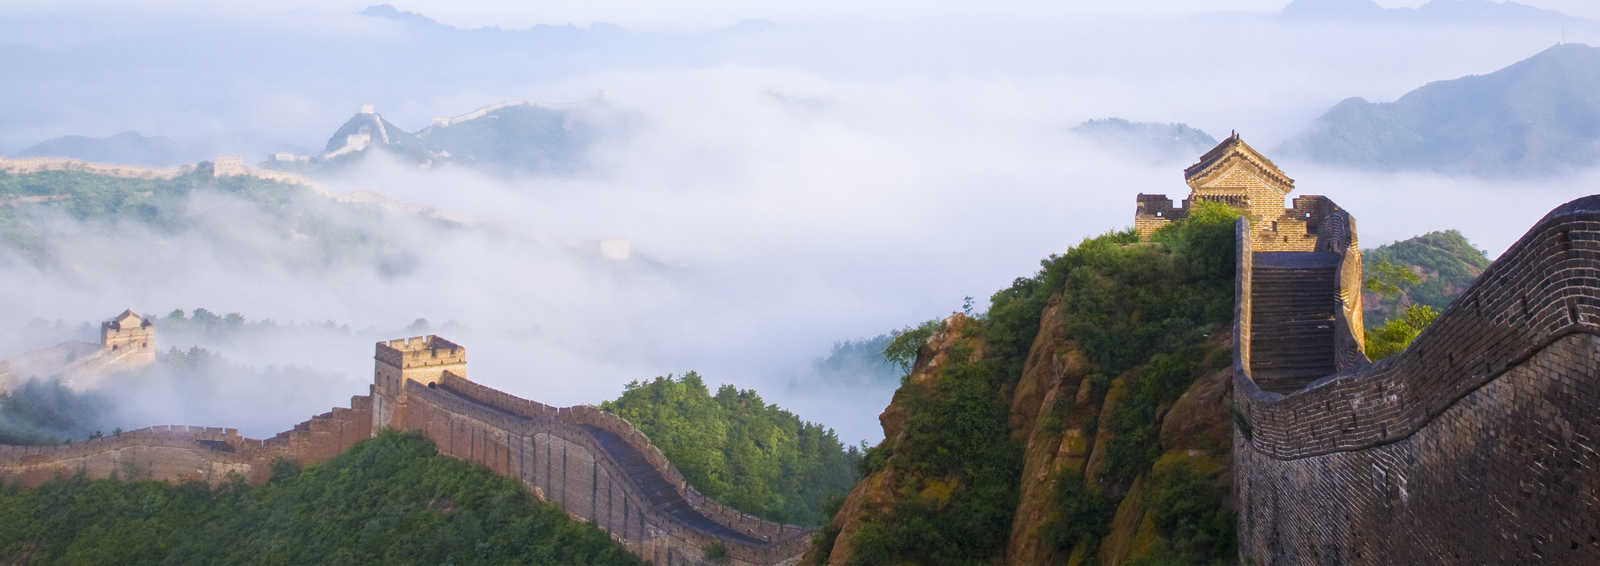 Great wall of China in fog, China